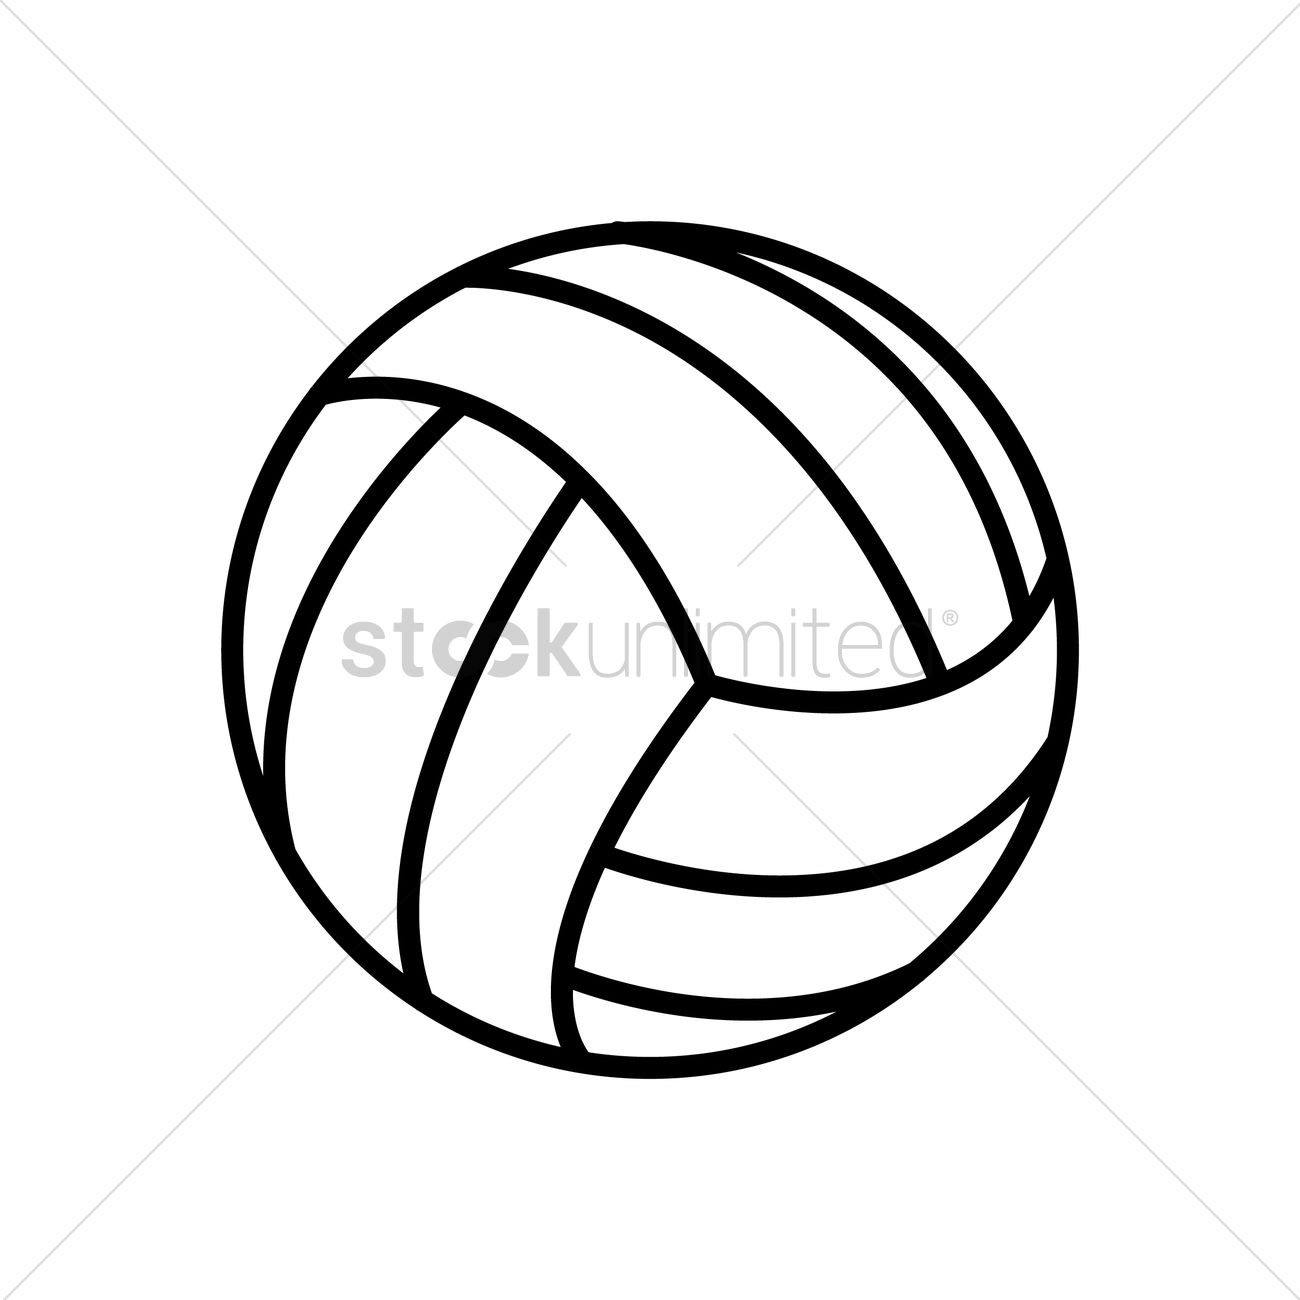 volleyball vector image 1547574 stockunlimited